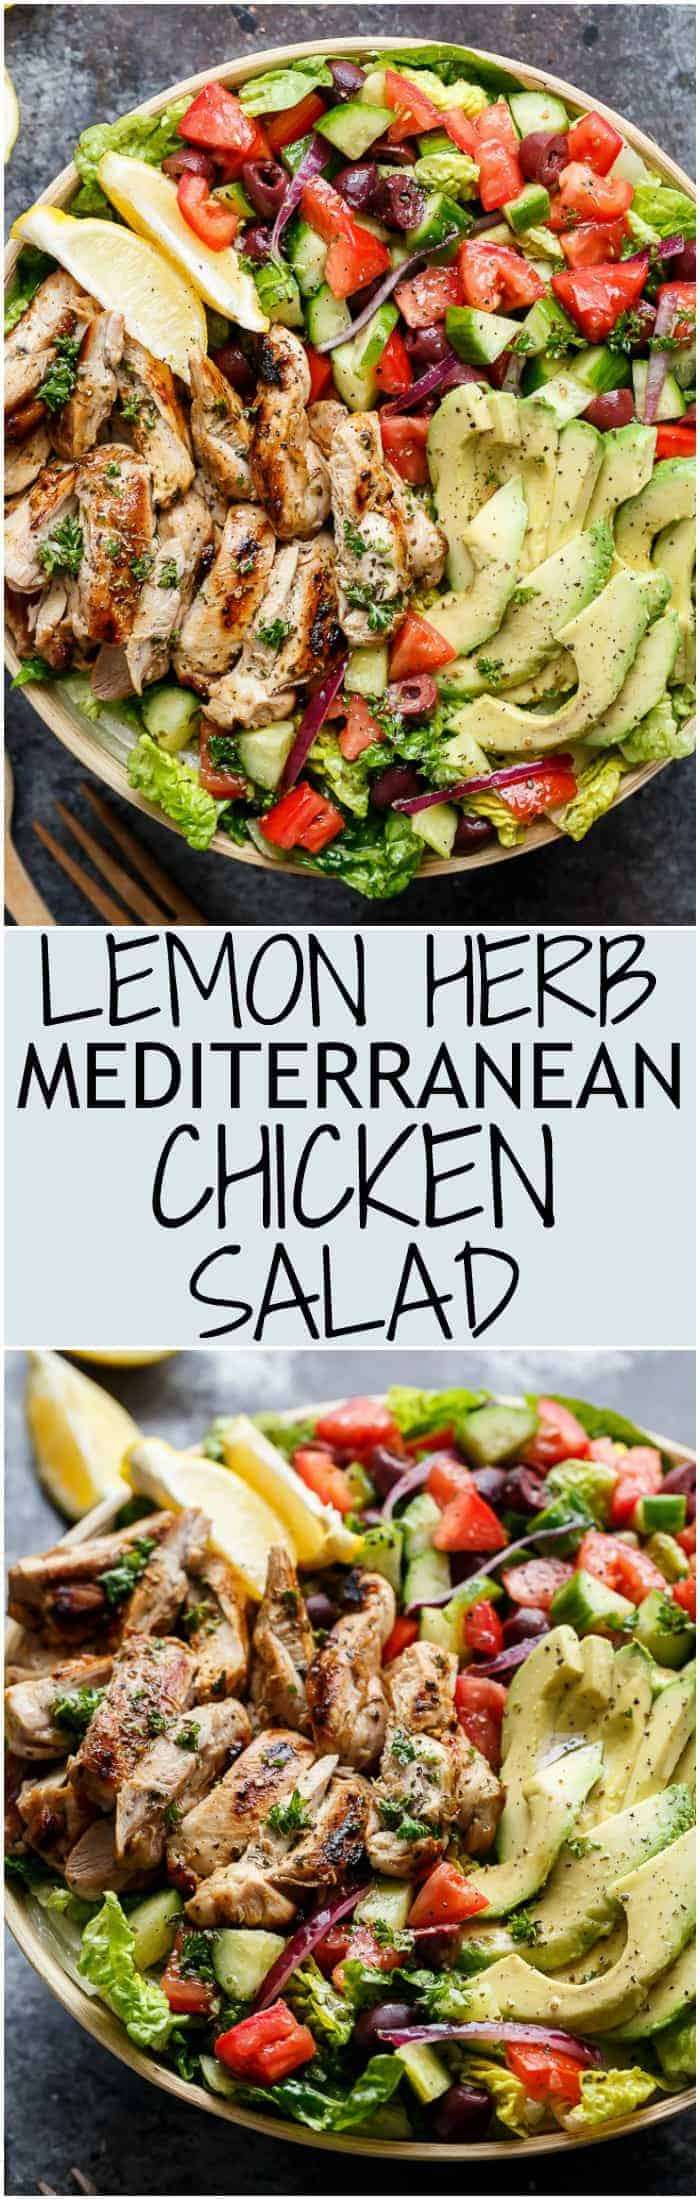 Grilled Lemon Herb Mediterranean Chicken Salad that is full of Mediterranean flavours with a dressing that doubles as a marinade! | http://cafedelites.stfi.re